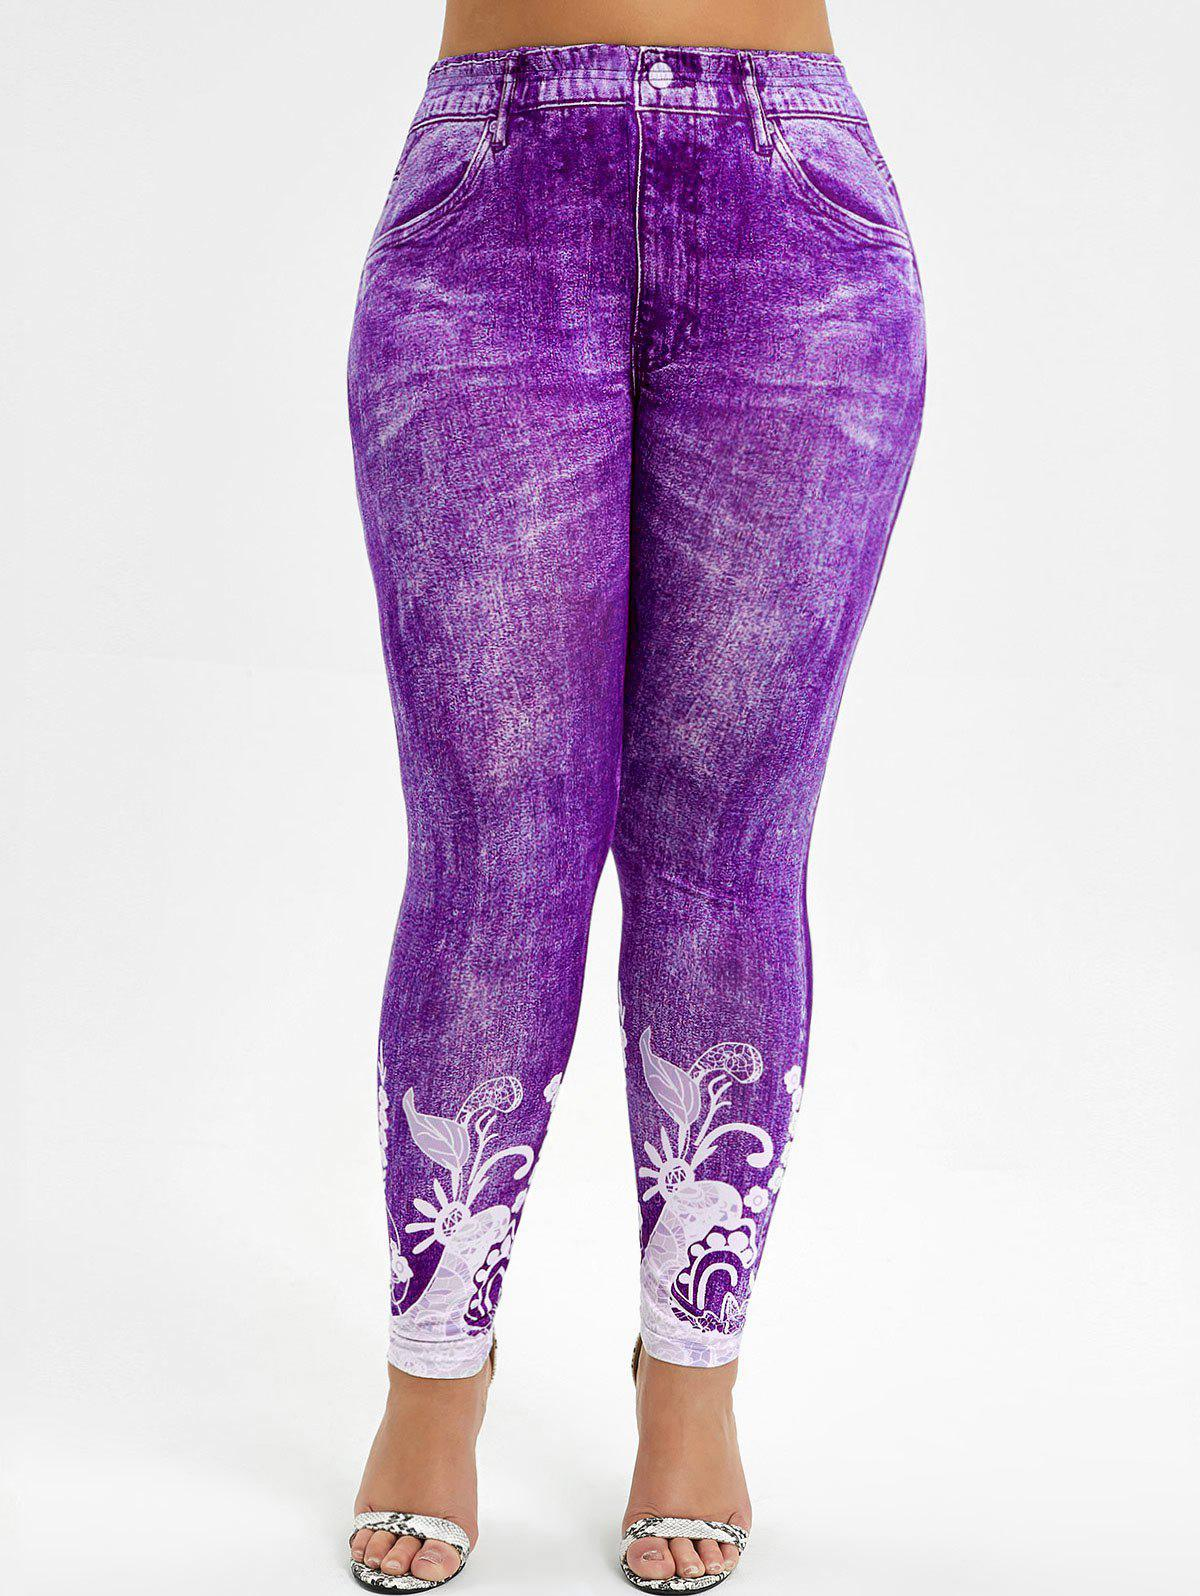 Shop High Waisted 3D Printed Plus Size Jeggings